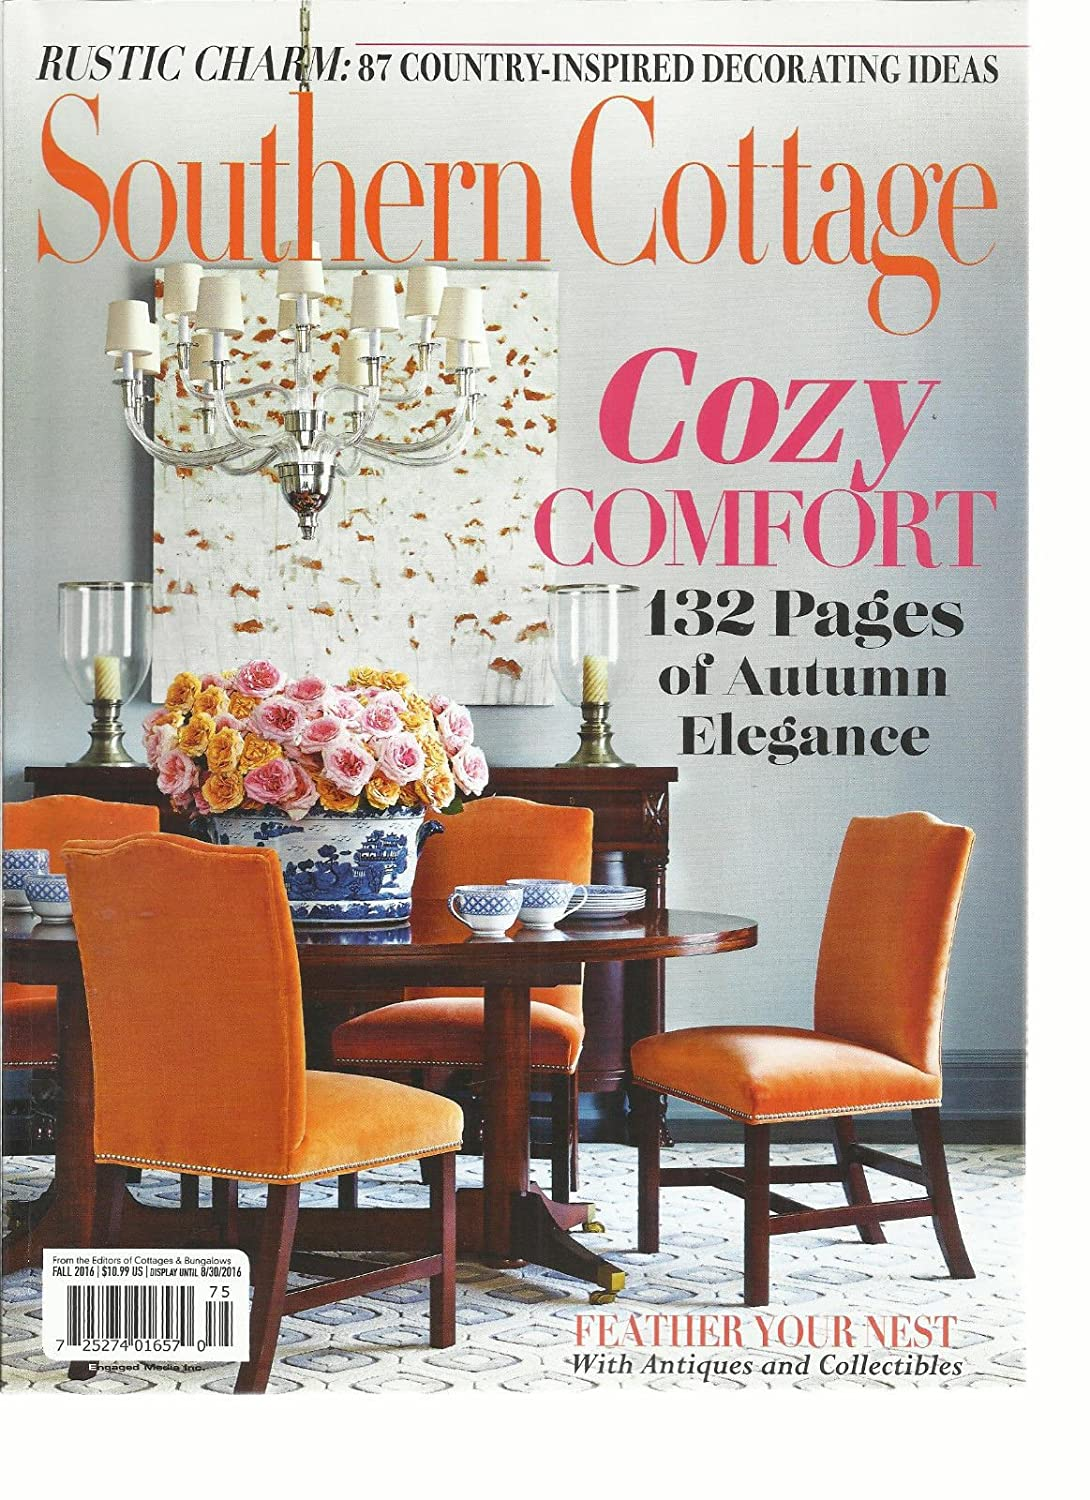 SOUTHERN COTTAGE MAGAZINE FALL, 2016 87 COUNTRY INSPIRED DECORATING IDEAS s3457